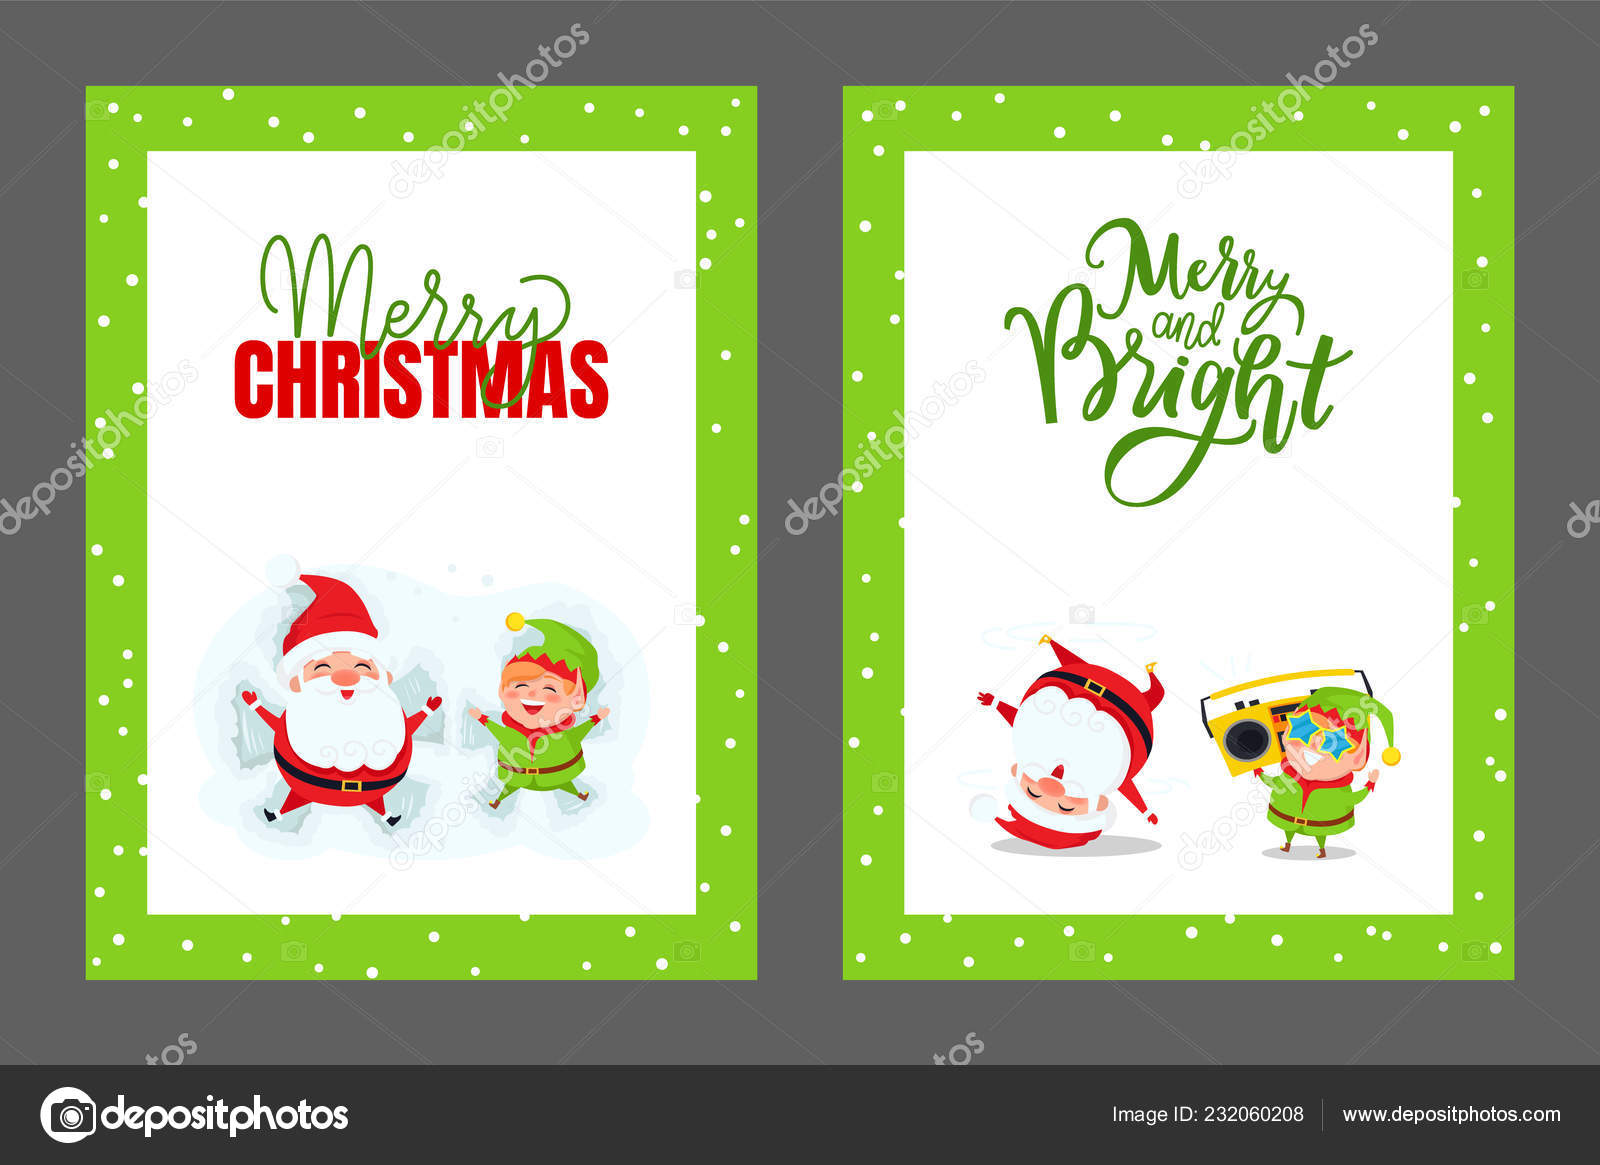 Christmas Break Clipart.Clipart Christmas Break Happy Holidays And Merry